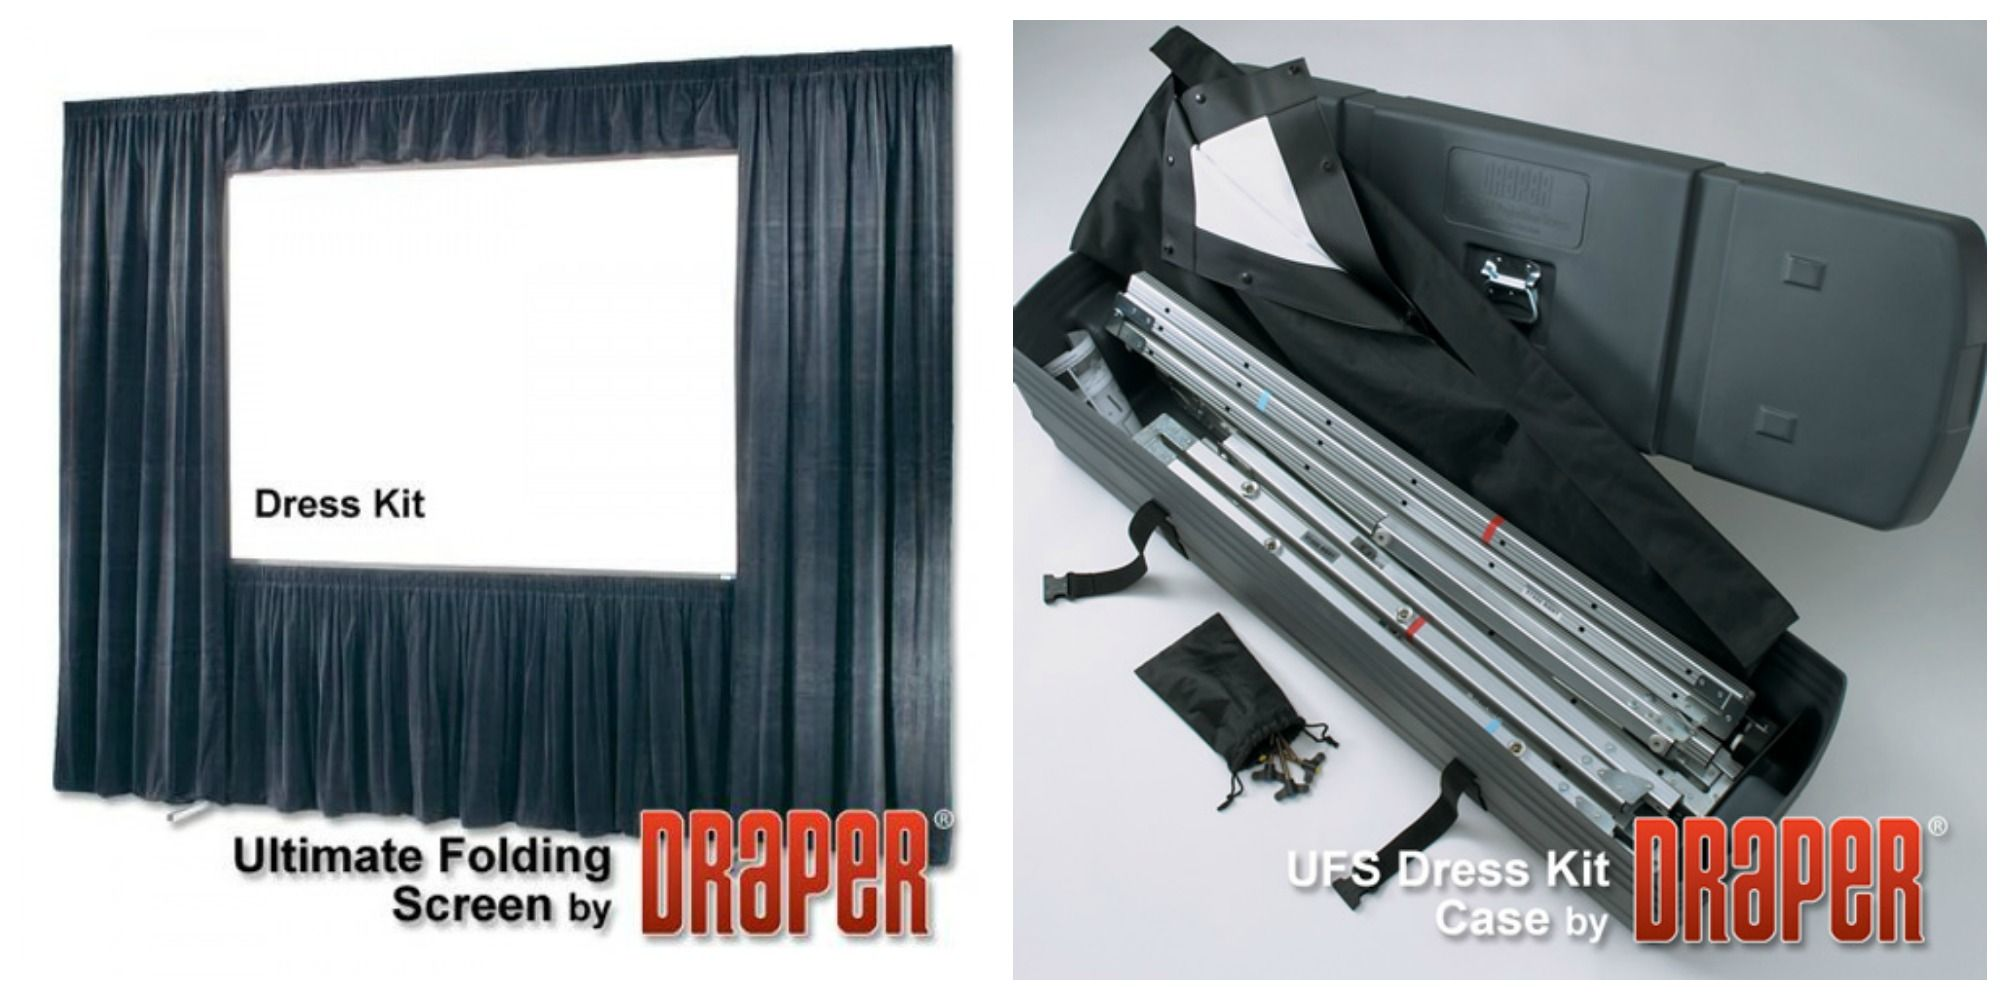 Folding Screen - Dress Kit